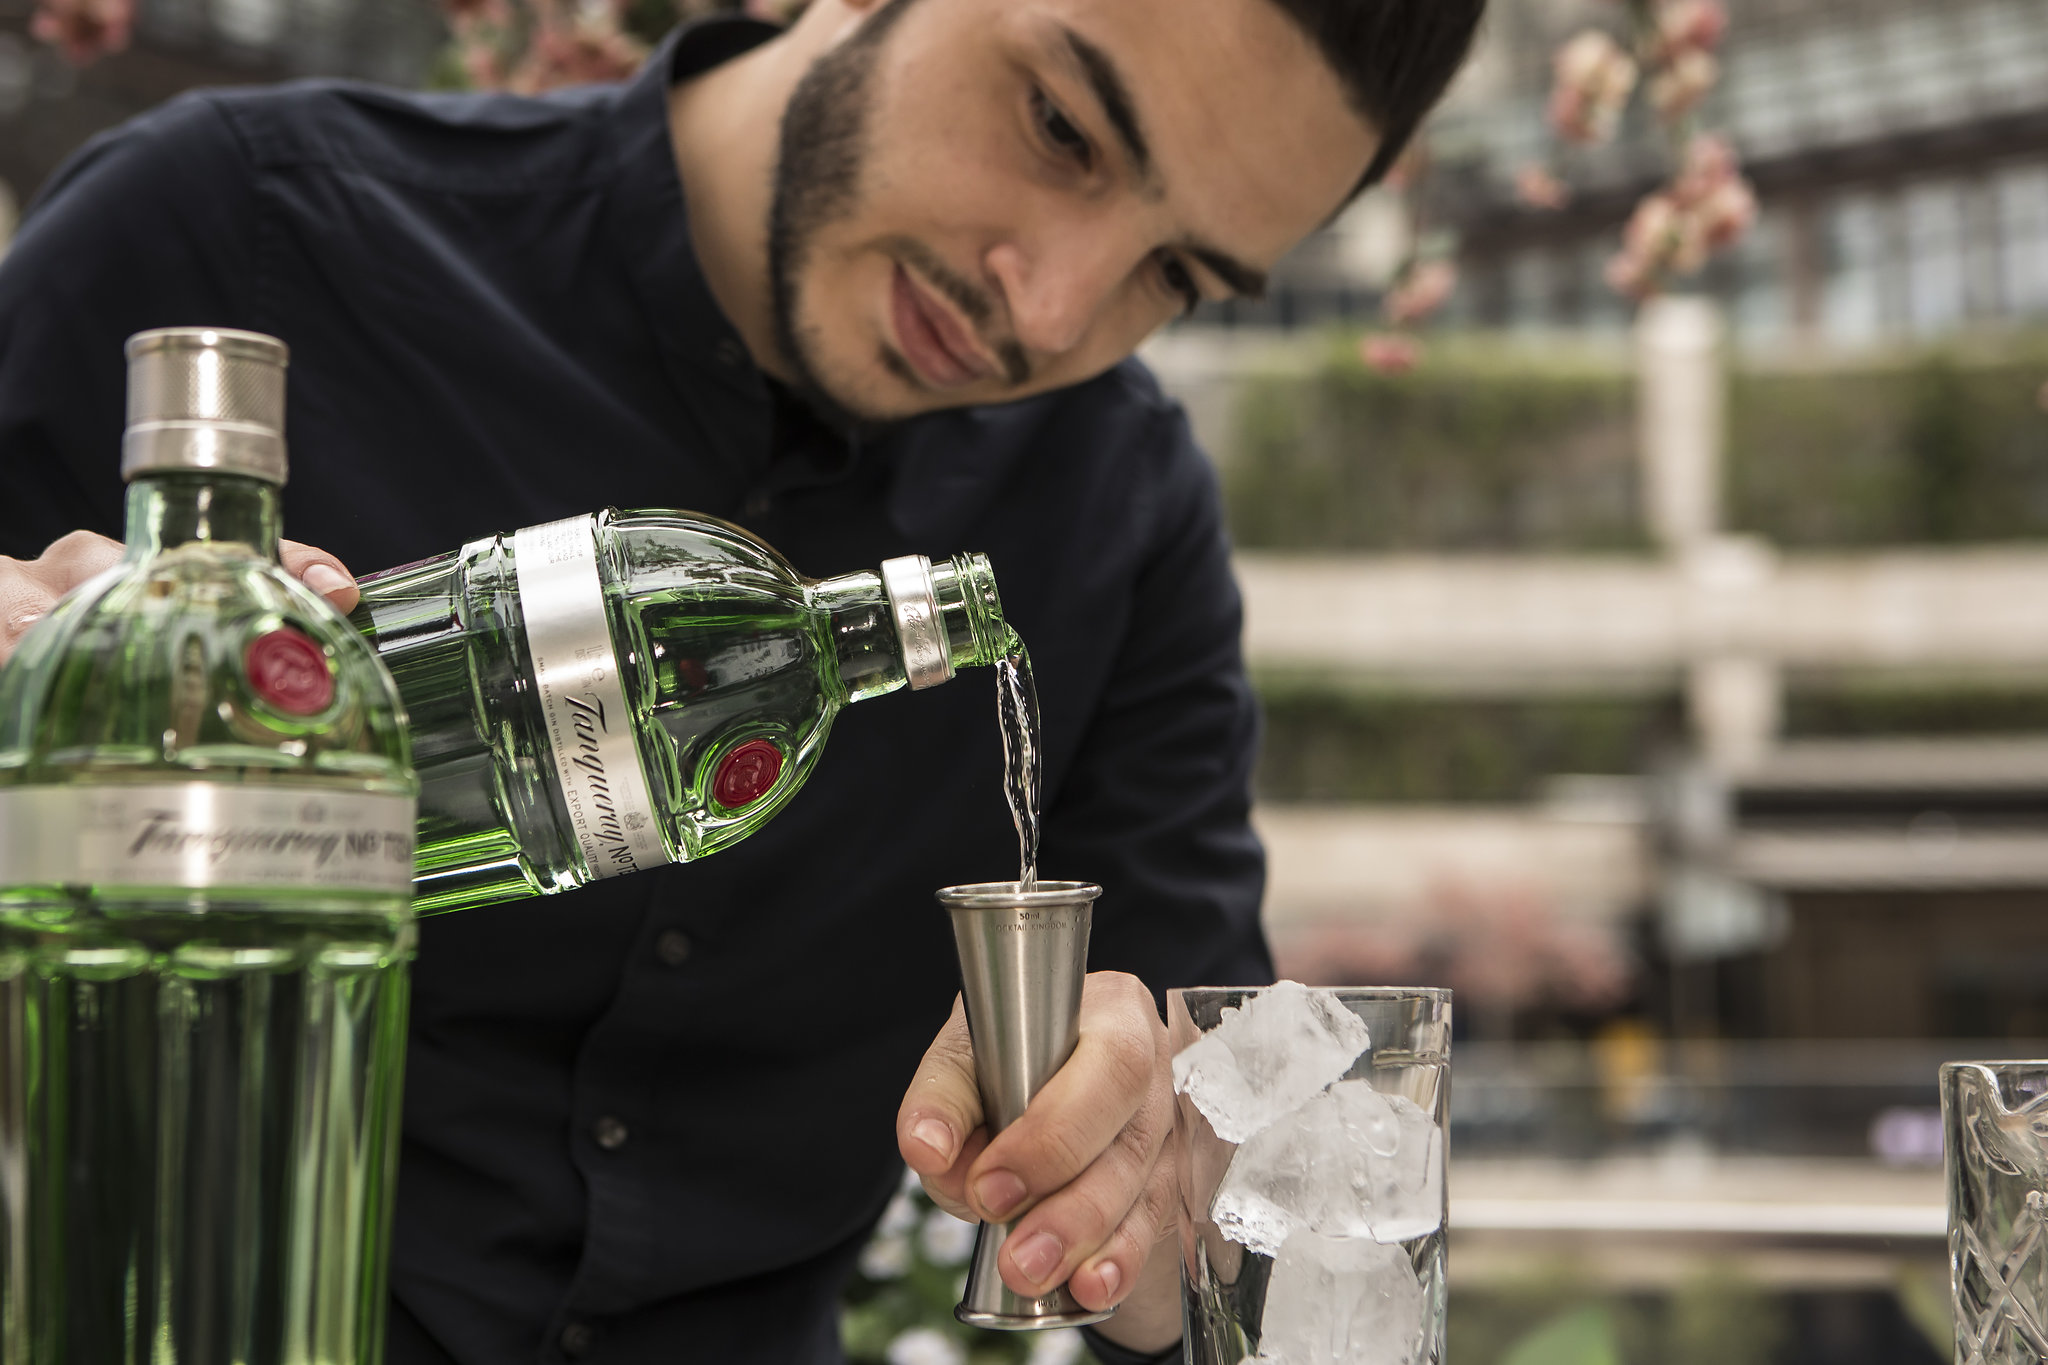 Bartender Pouring Tanqueray Gin